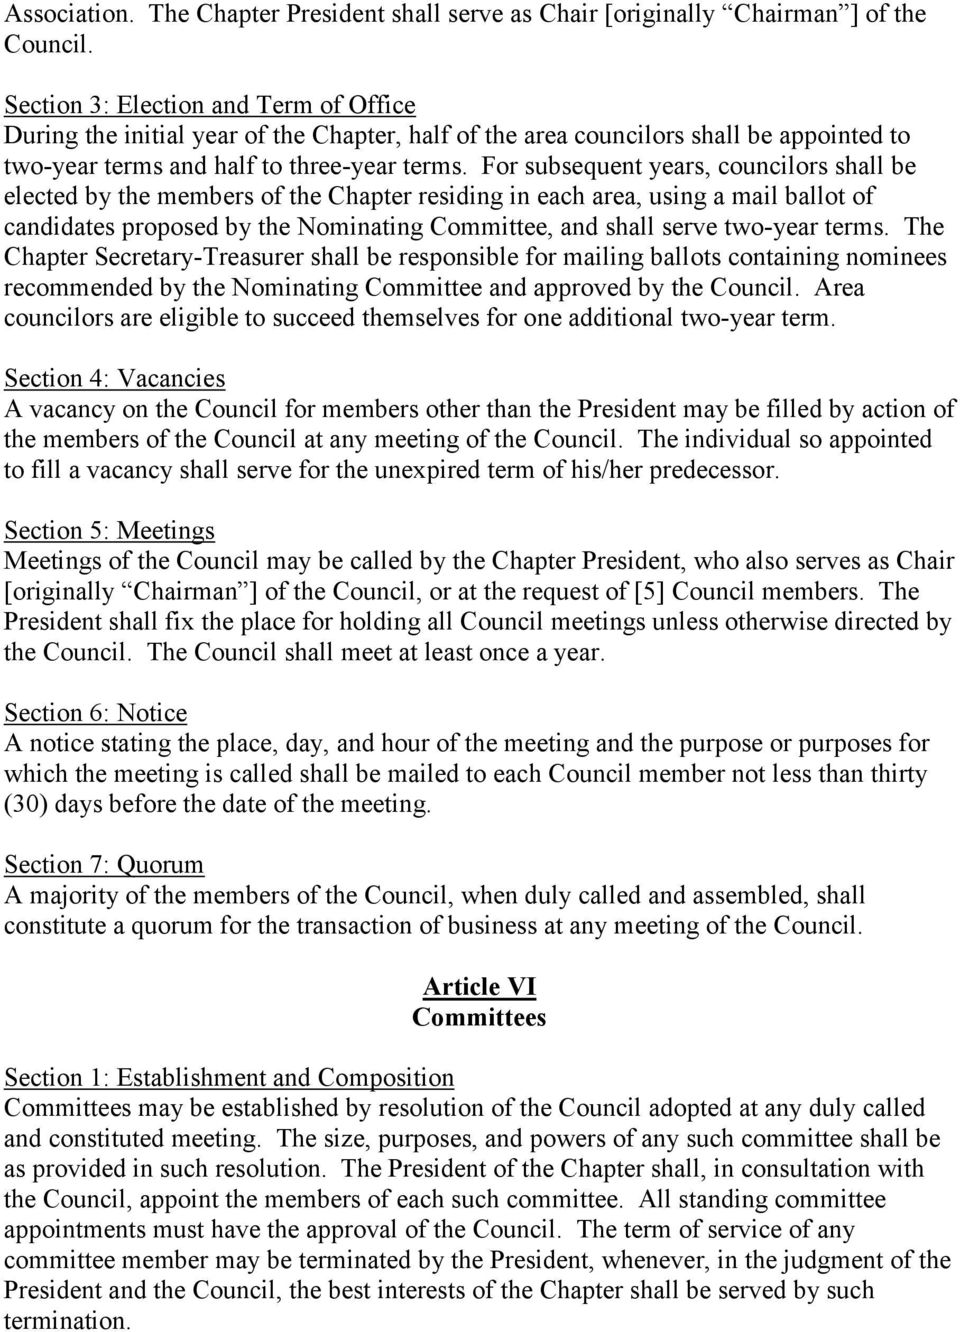 For subsequent years, councilors shall be elected by the members of the Chapter residing in each area, using a mail ballot of candidates proposed by the Nominating Committee, and shall serve two-year